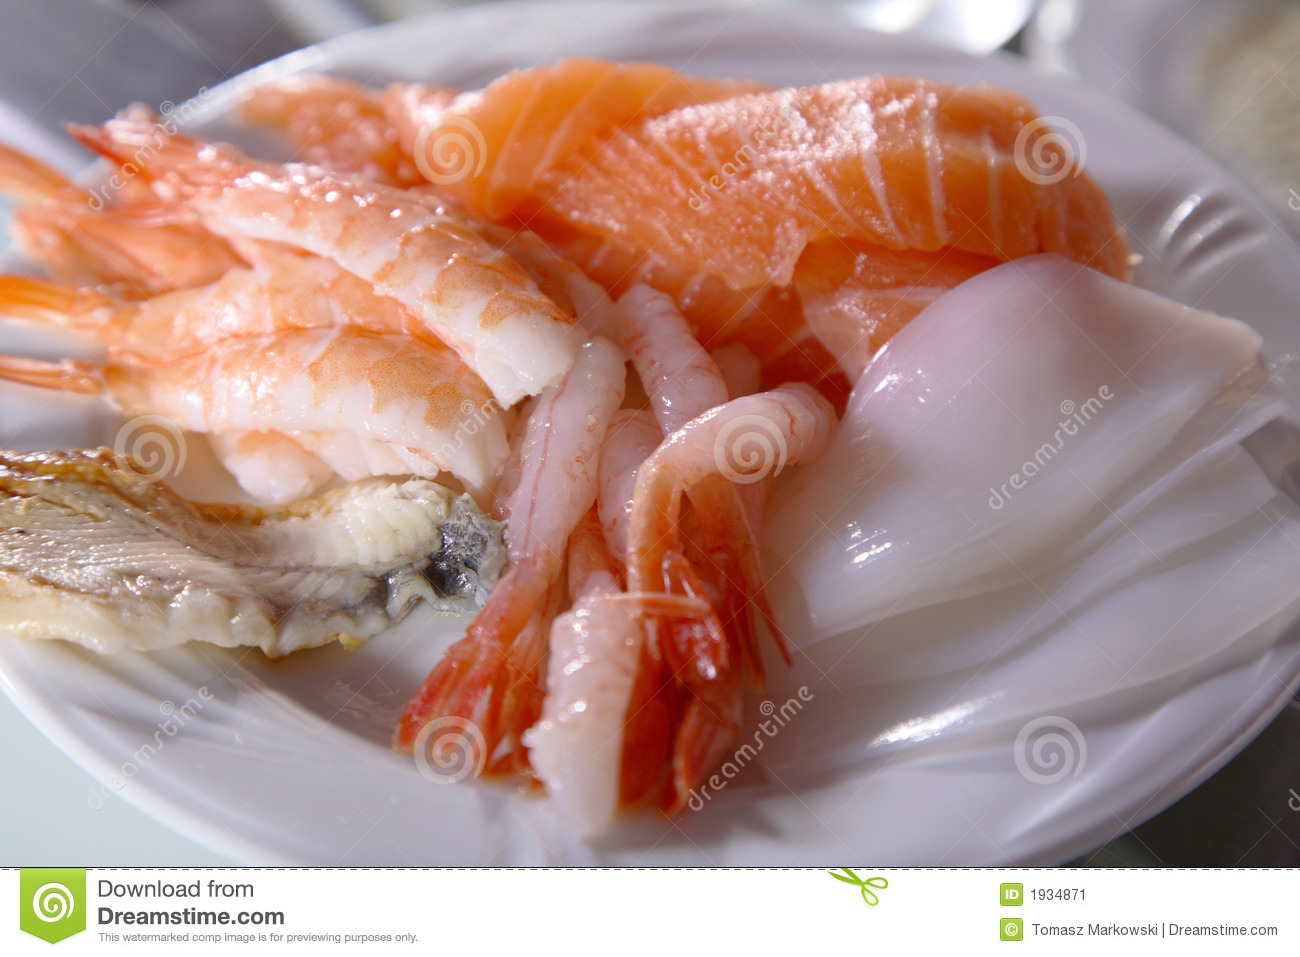 plate of raw seafood, sliced and ready for use in sushi-making.